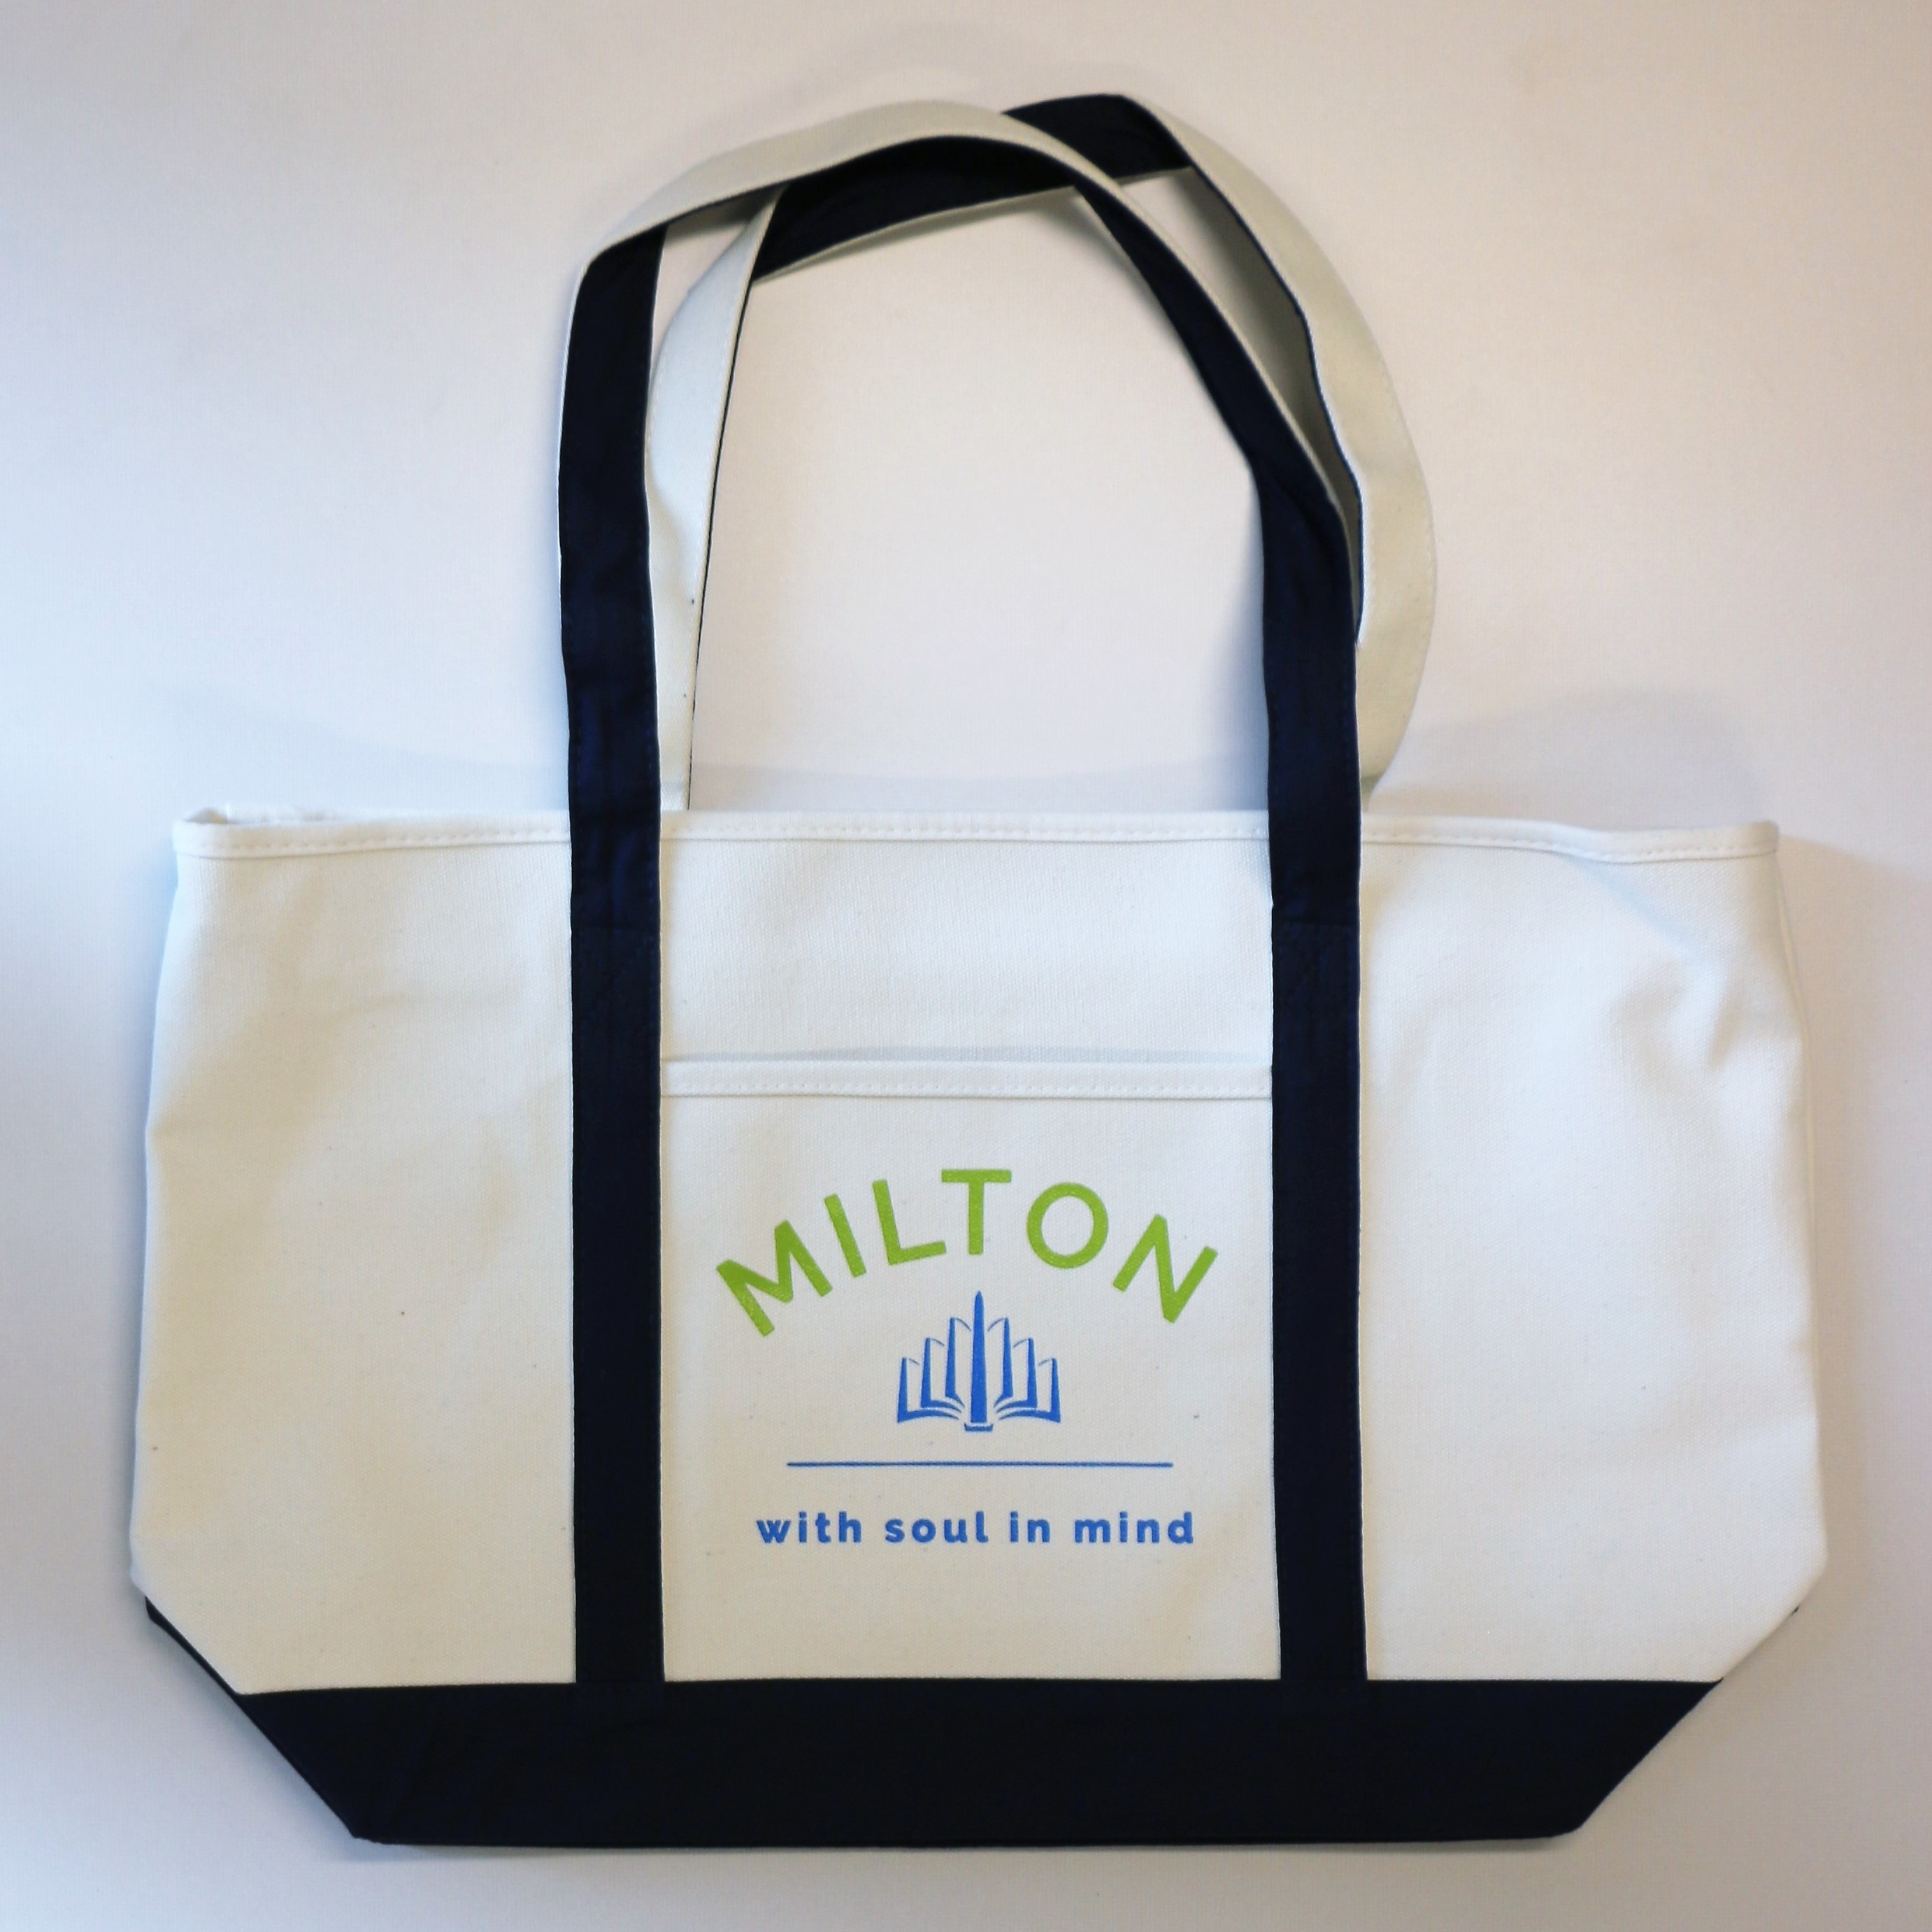 A large canvas tote bag, off-white with a black bottom and straps, and the MILTON logo in color on the side.